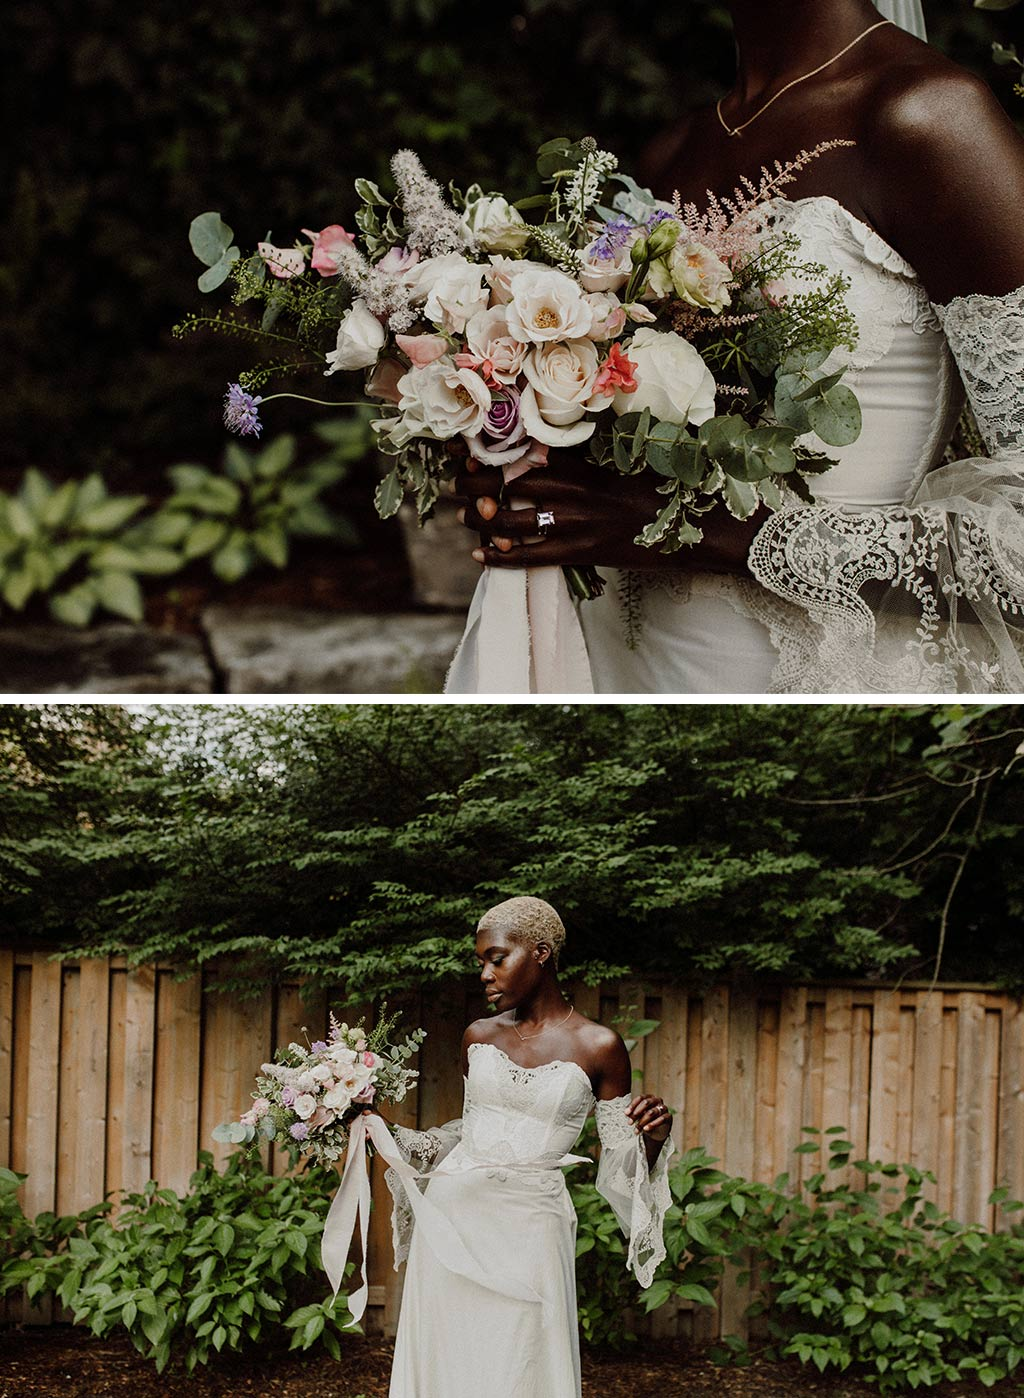 Wedding Bouquet | Model with Bouquet